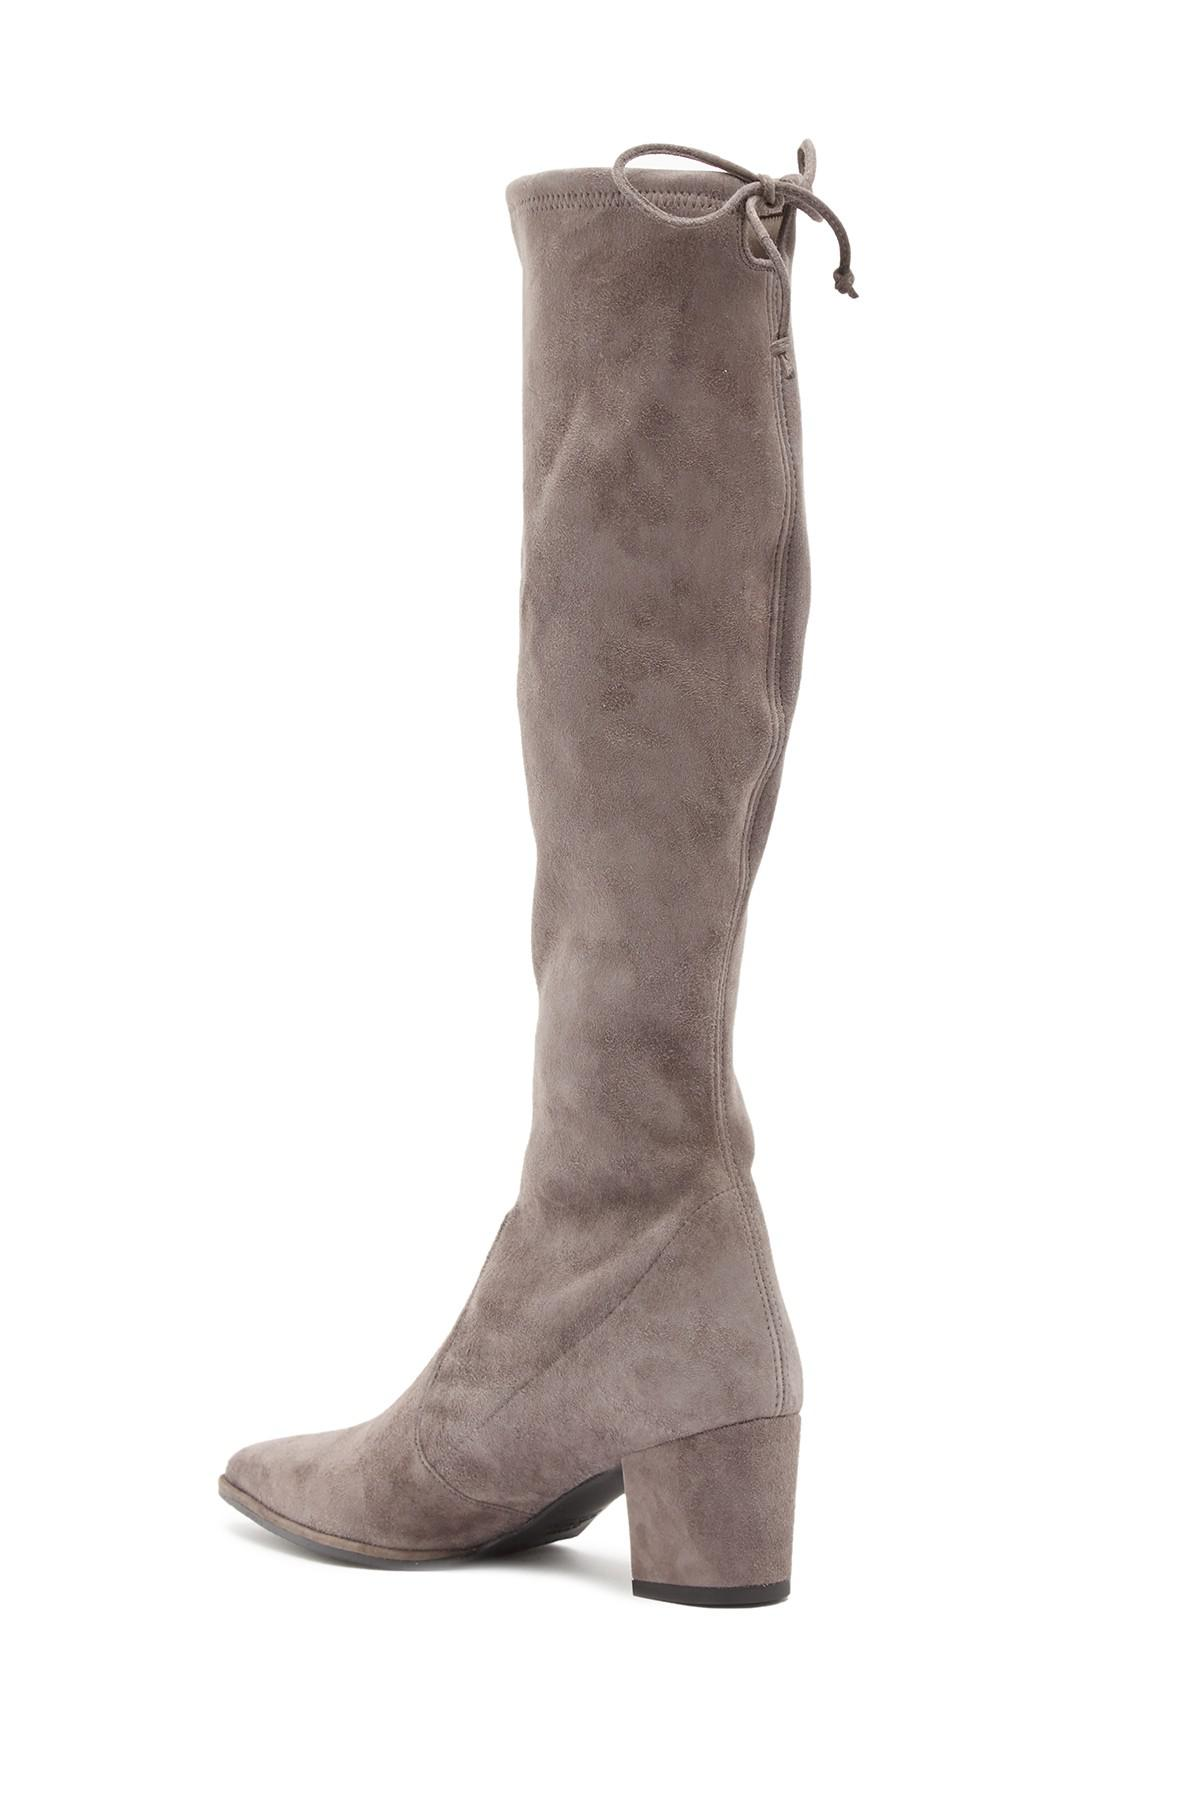 a00c0e2f275 Stuart Weitzman Cleveland Knee High Boot - Best Picture Of Boot ...